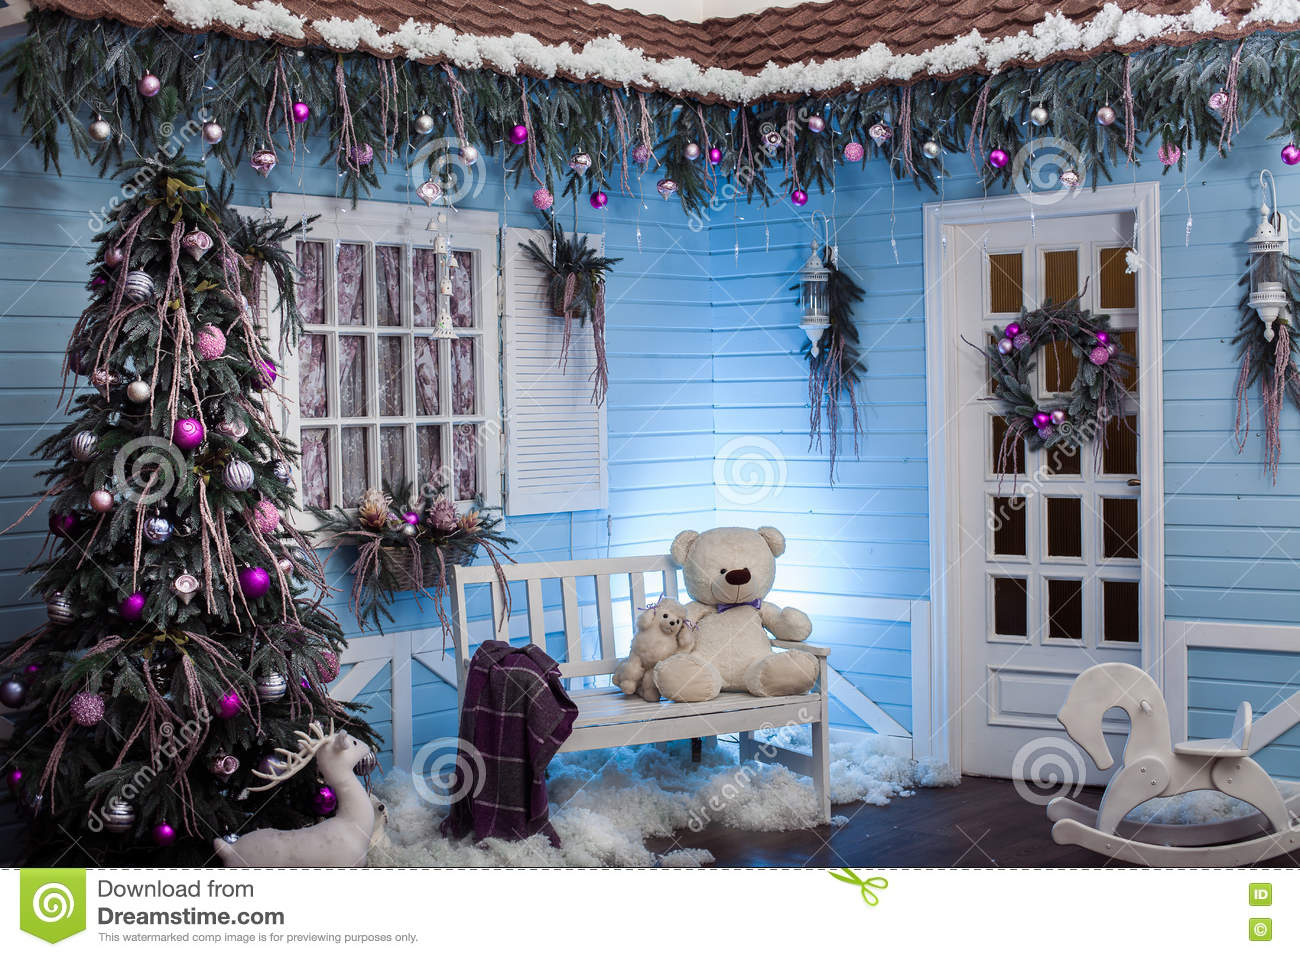 download winter exterior of a country house with christmas decorations in stock image image of - How To Decorate Exterior Of House For Christmas